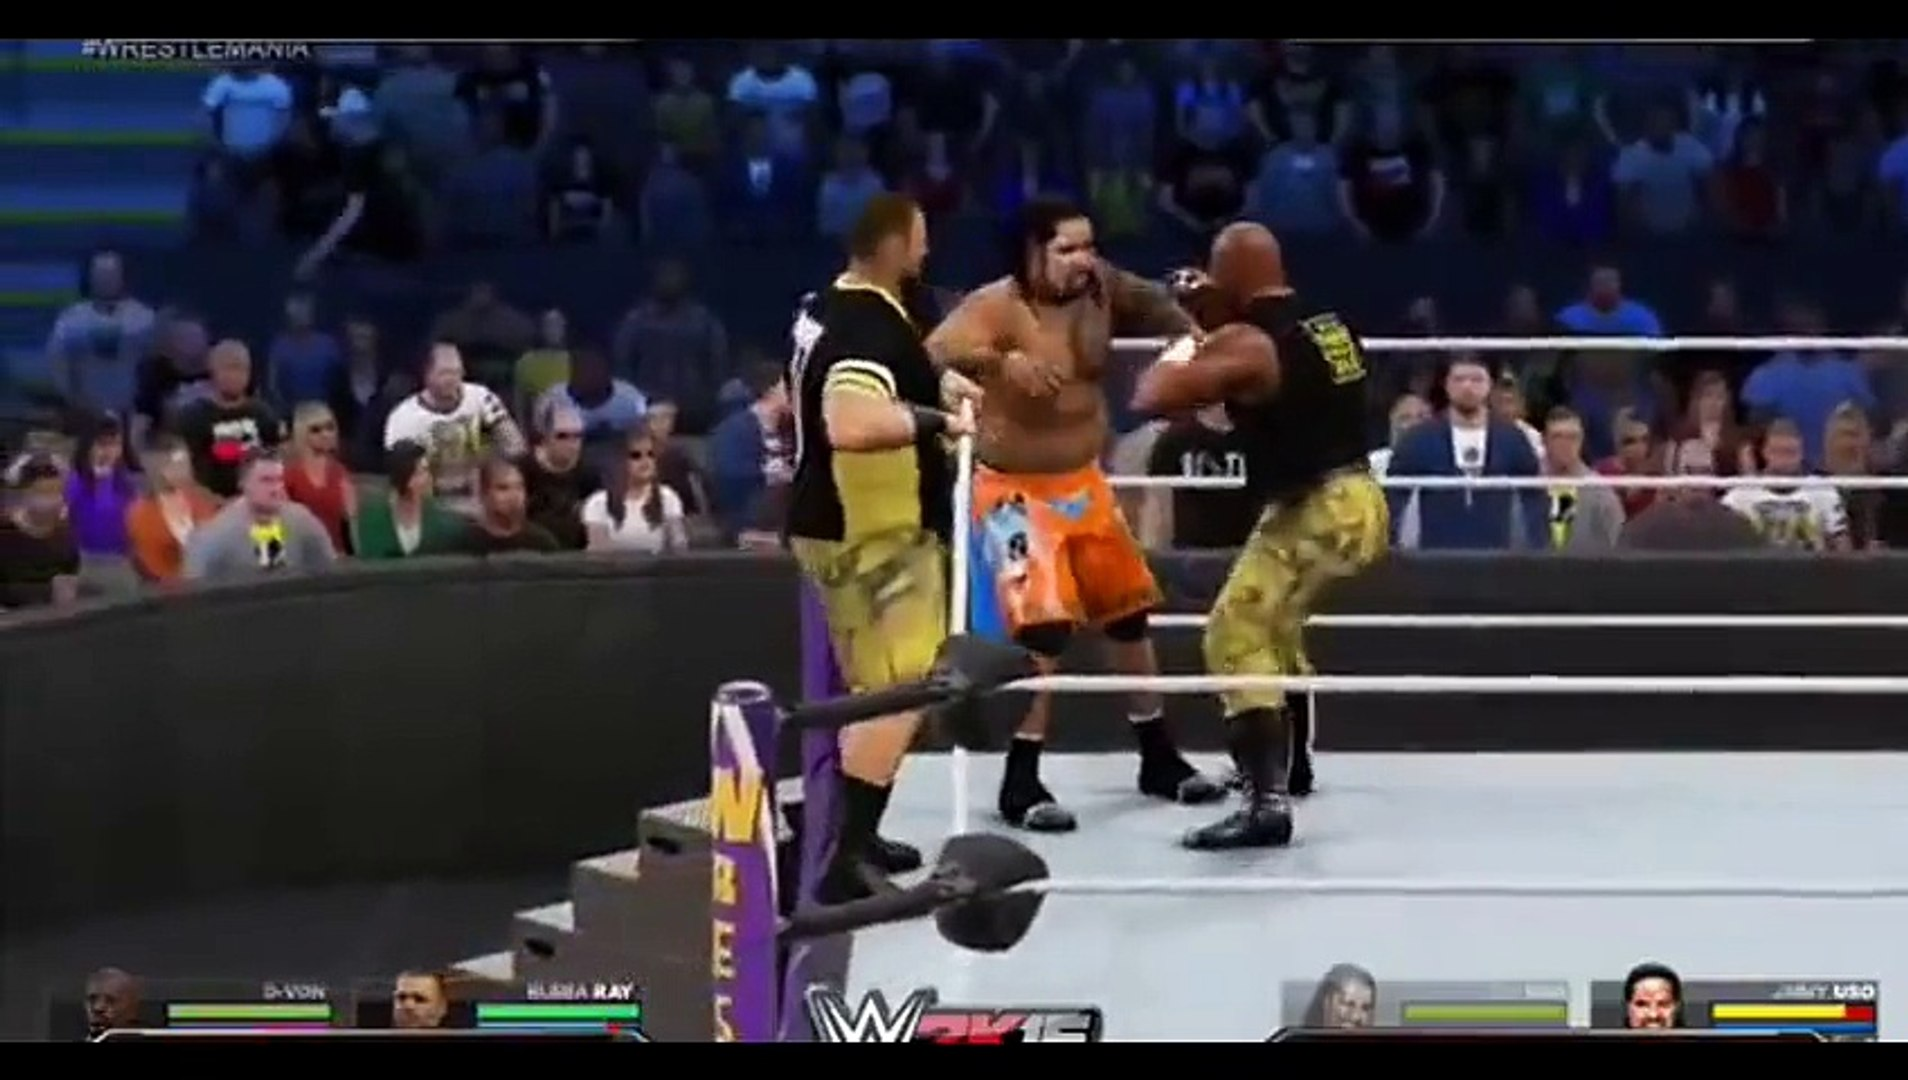 WWE 2K15 - Top 5 Tag Team Maneuvers (WWE 2K15 Countdown)